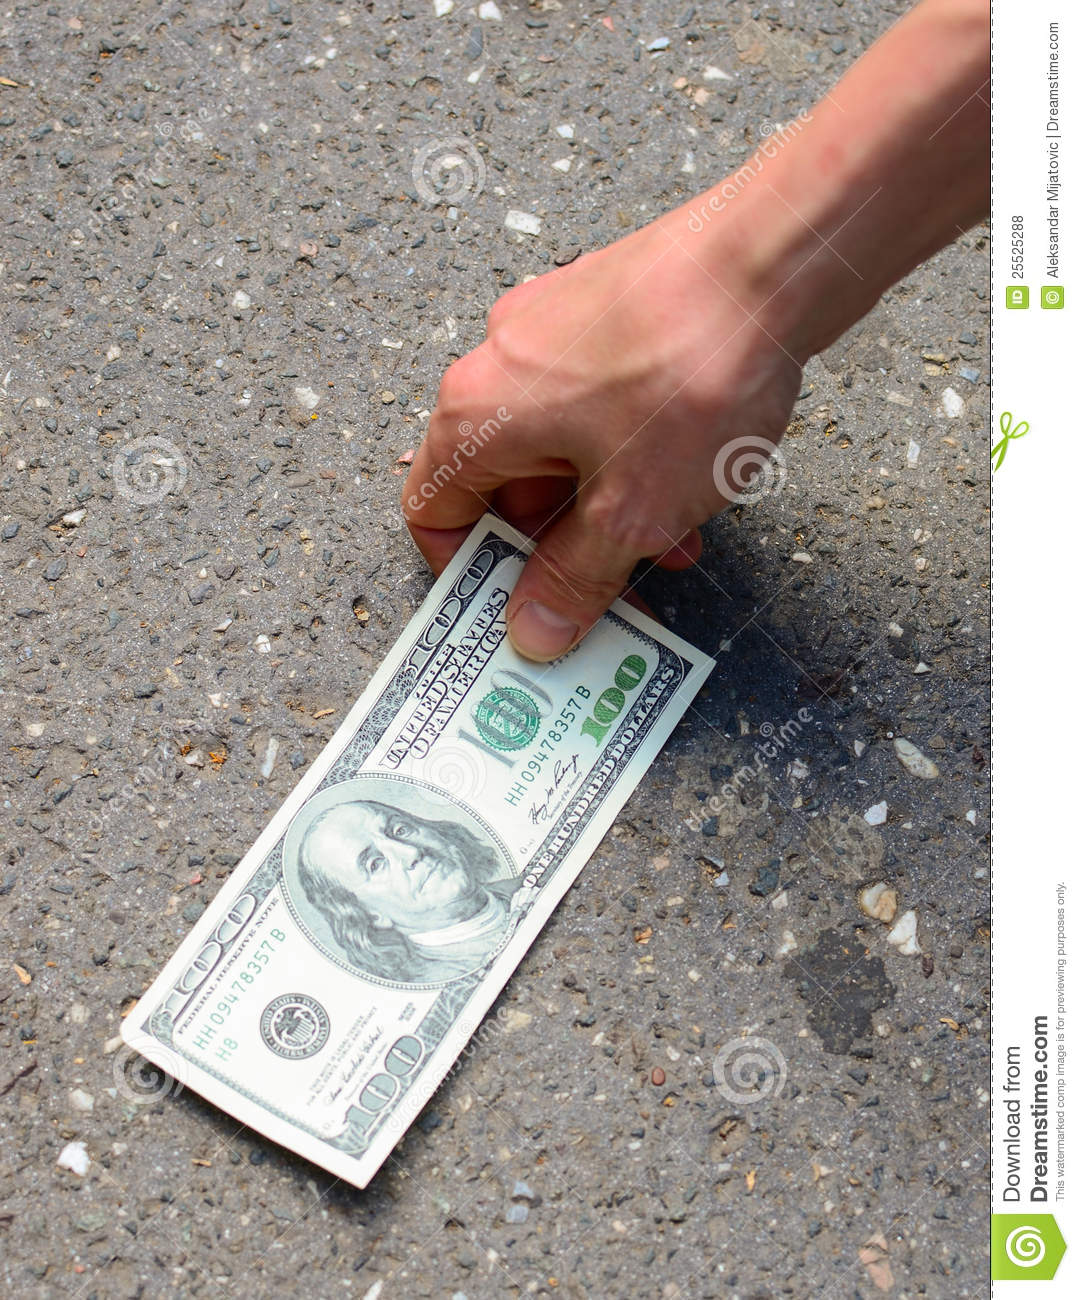 The money prank! Tie a invisible piece of string to a note of money. Place the money on the ground. When someone finds the money and trys to pick it up. Pull the string so the money moves away from the person.